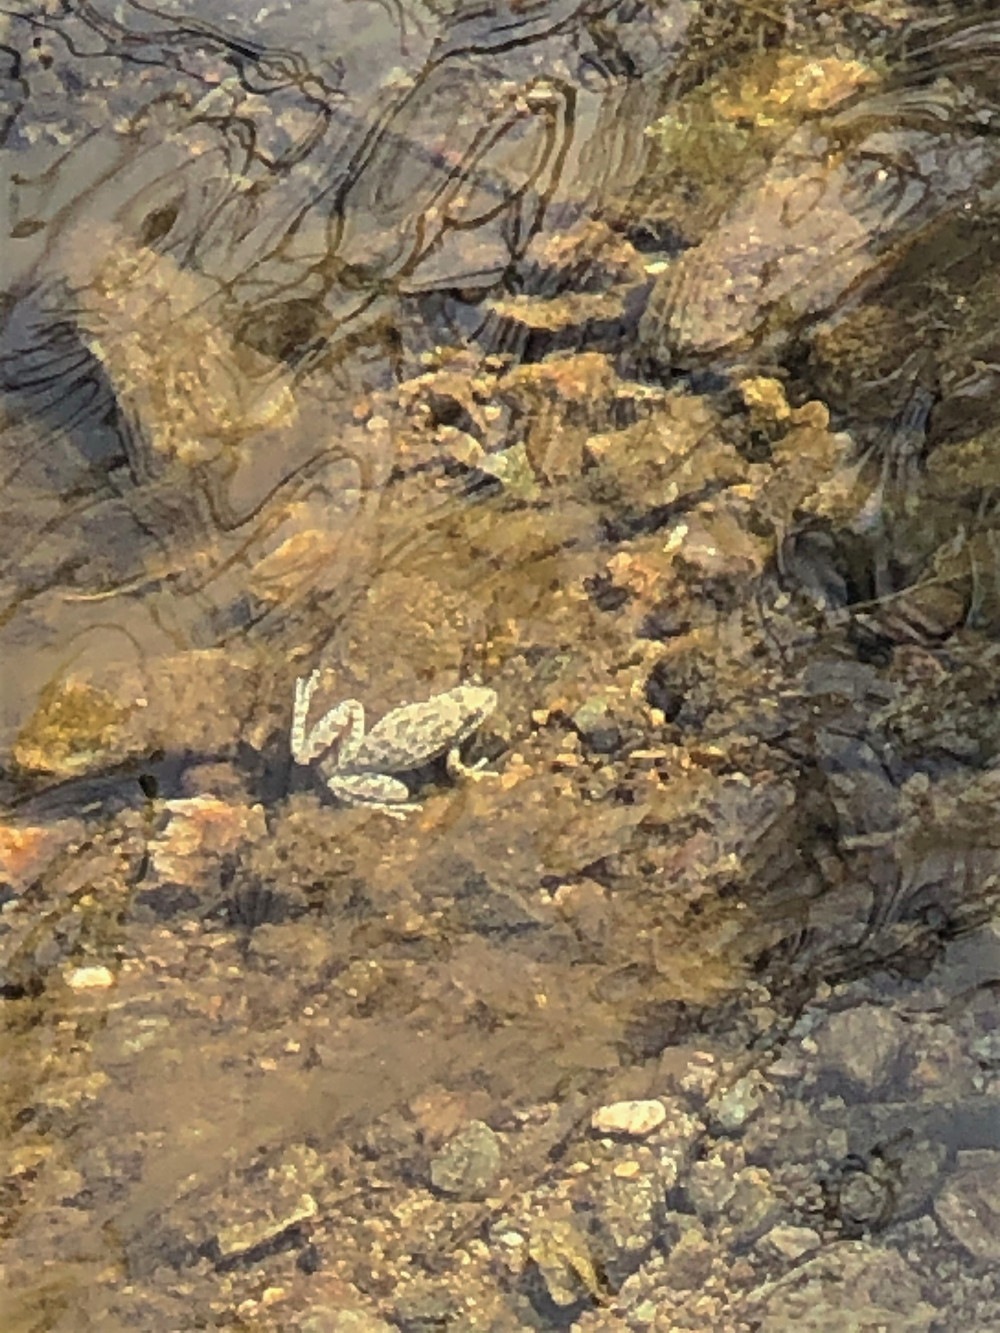 Frog in the Horsethief Creek in the Santa Rosa Wilderness